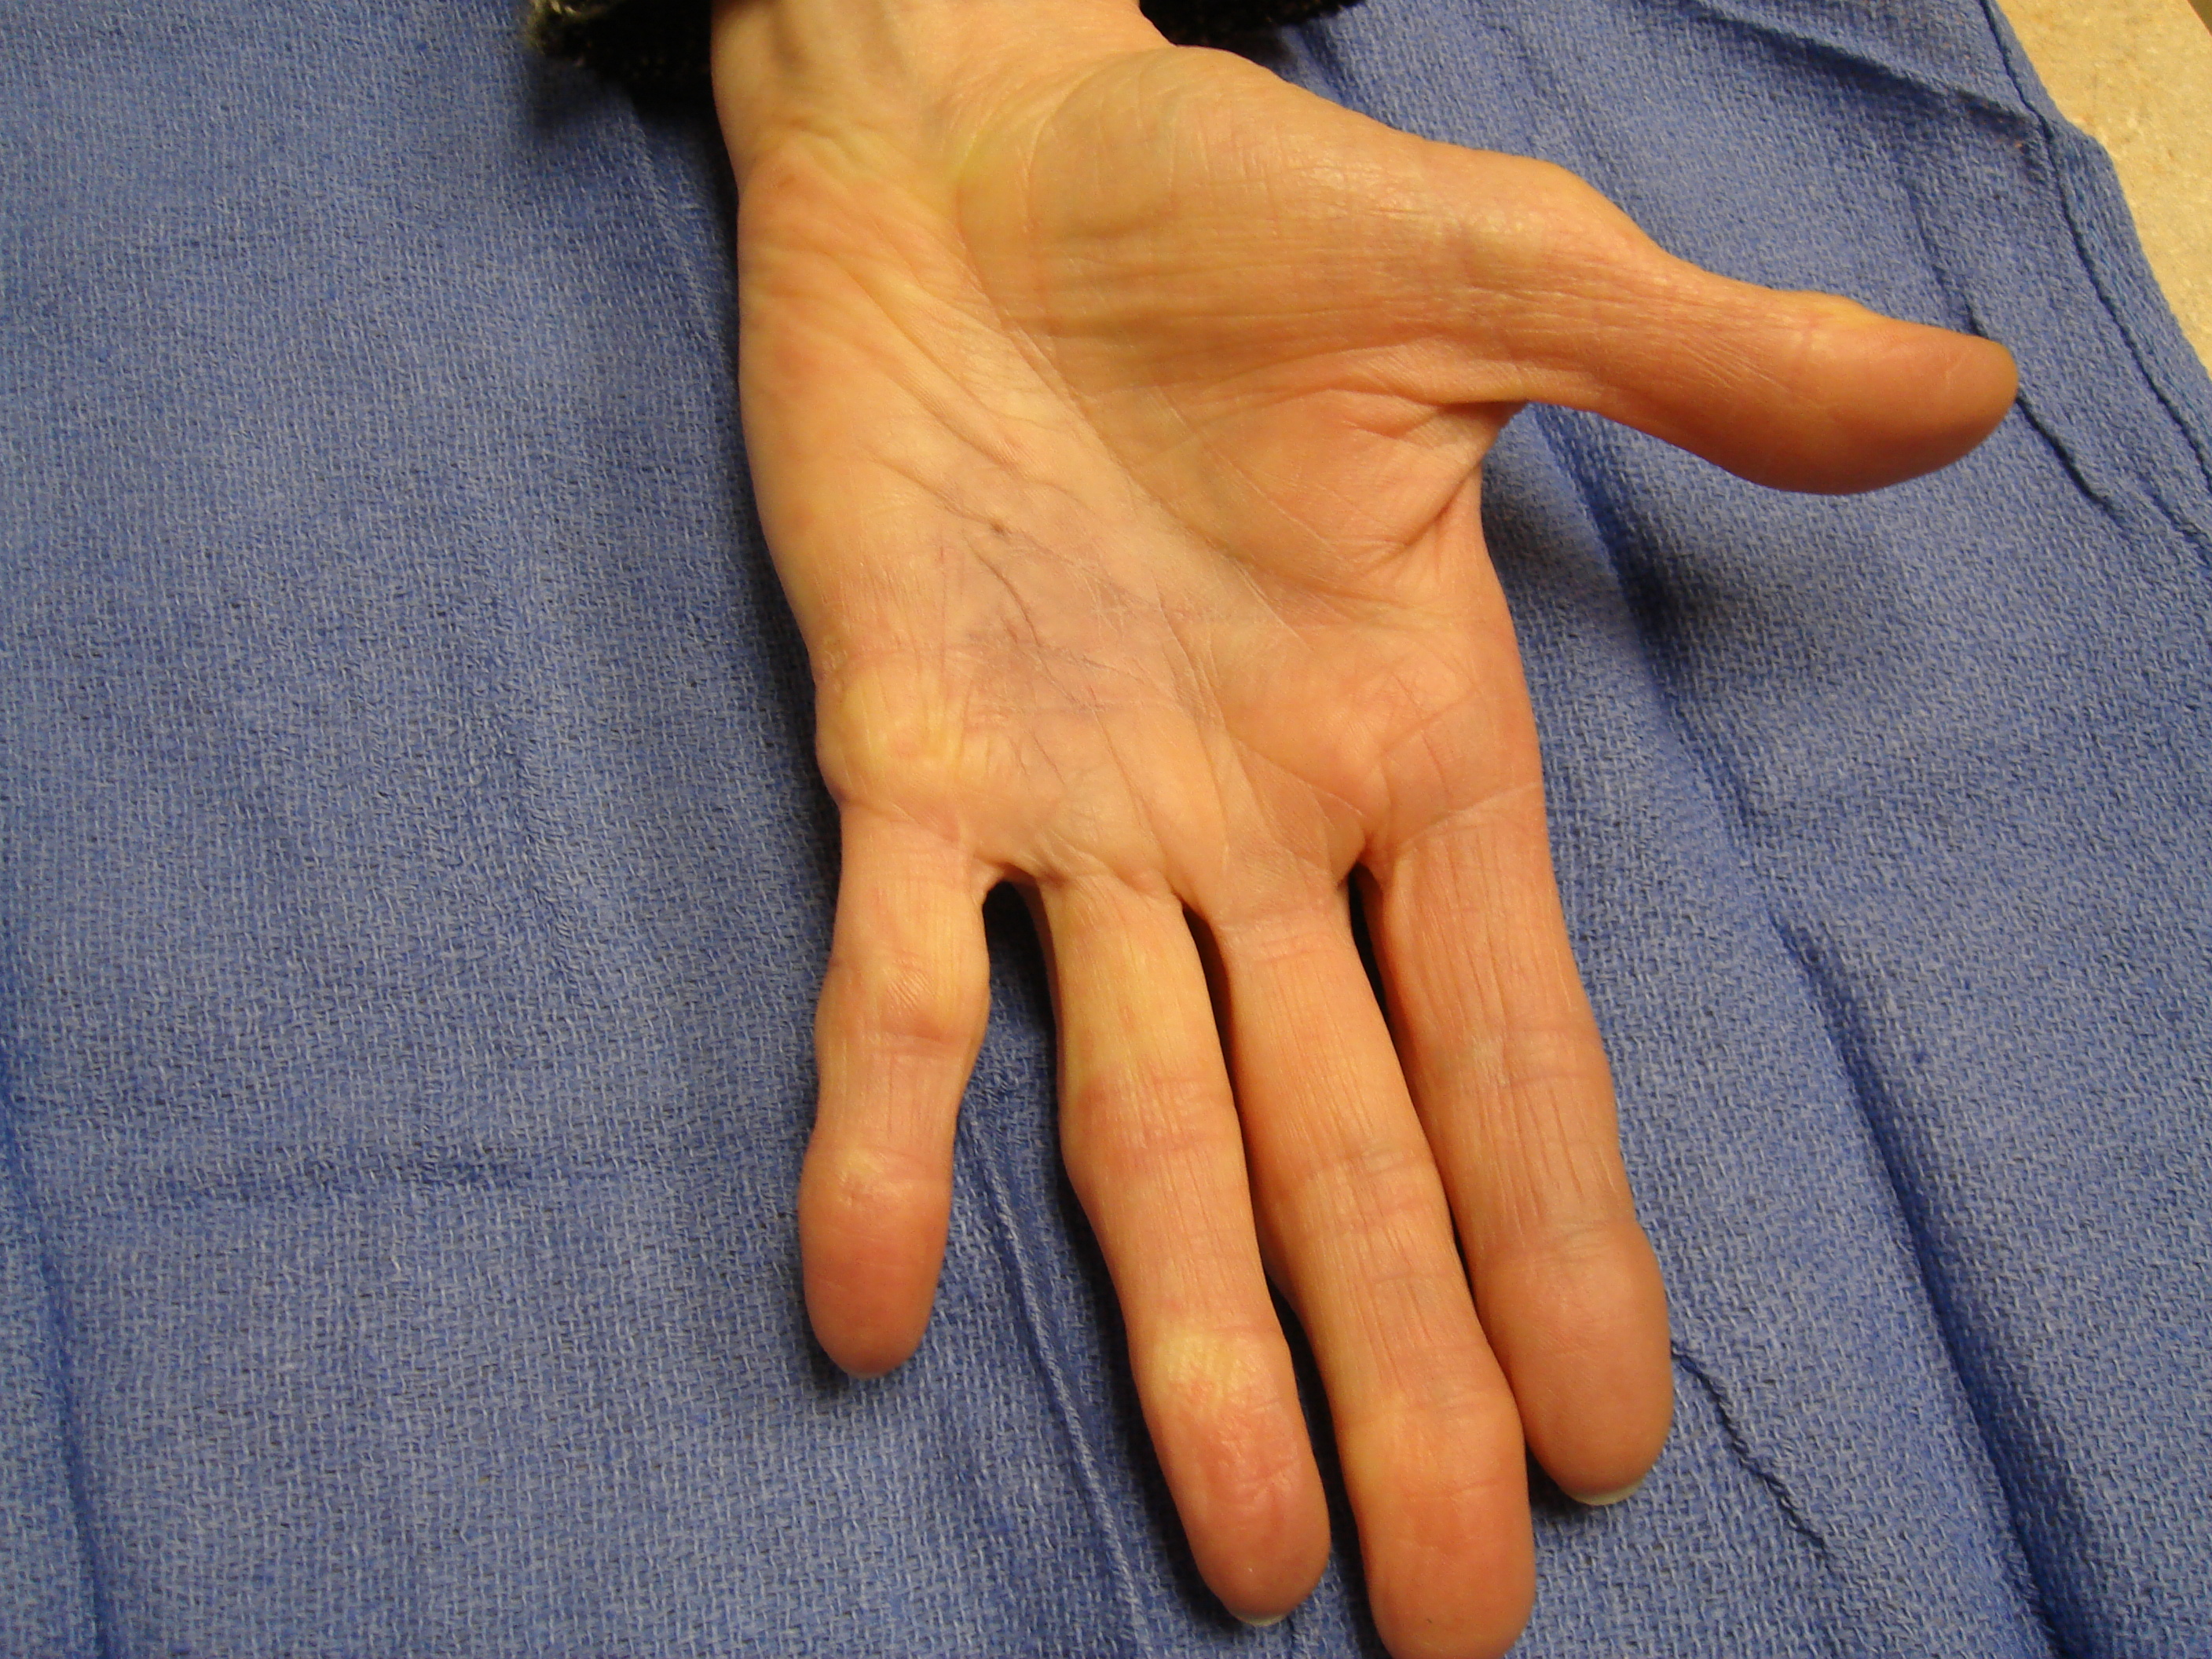 Figure 1h: These photographs illustrate the patient's hand 6 months after the second enzyme treatment cycle (for the fourth ray) and 15 months.